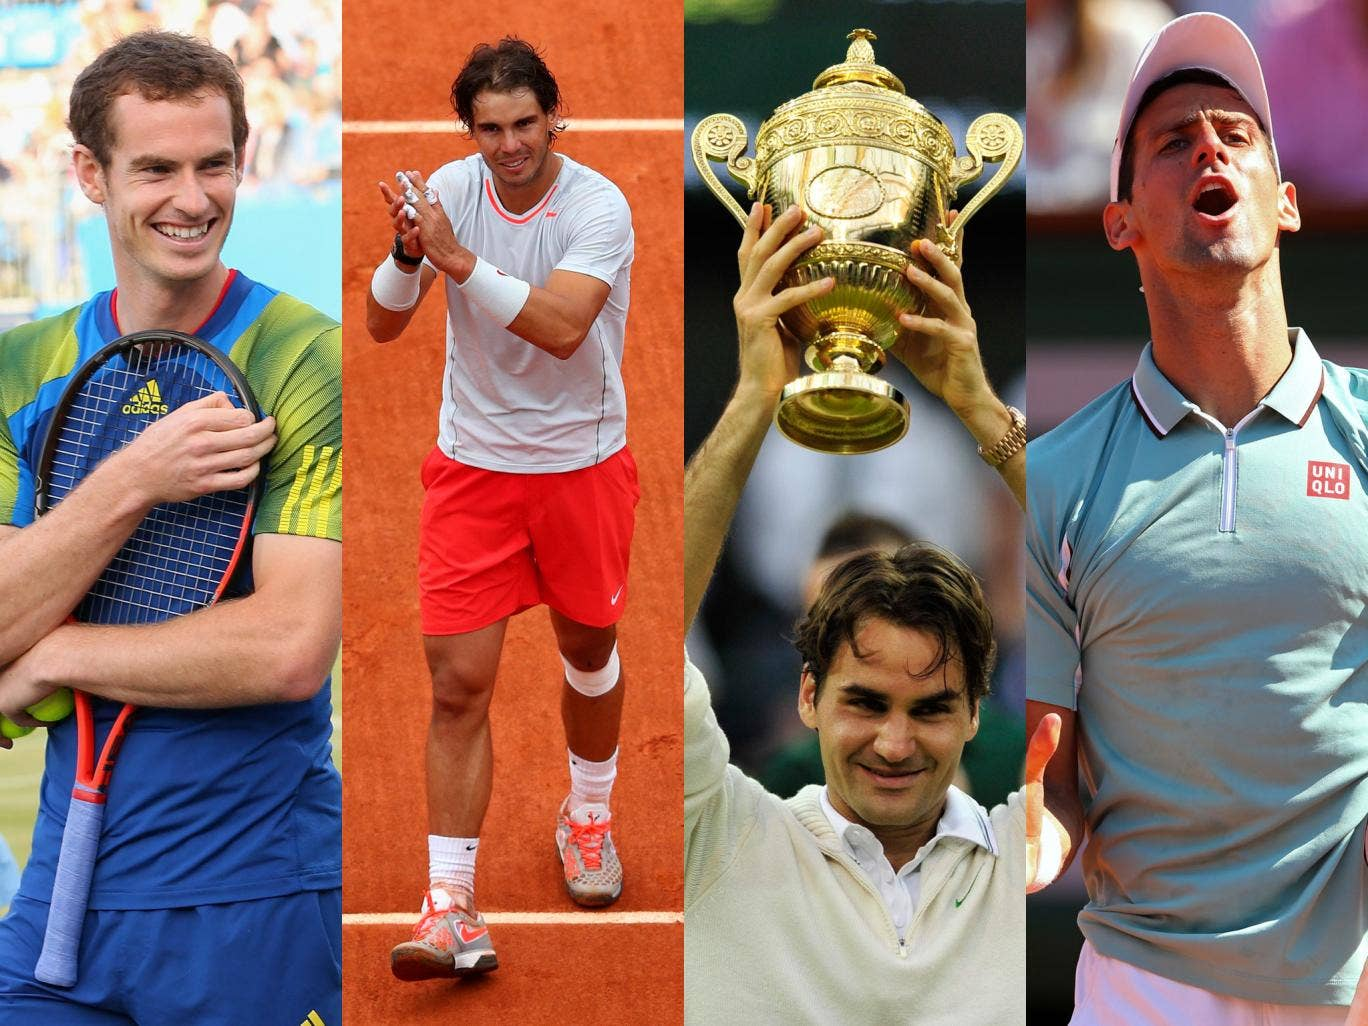 Andy Murray, Rafa Nadal, Roger Federer and Novak Djokovic